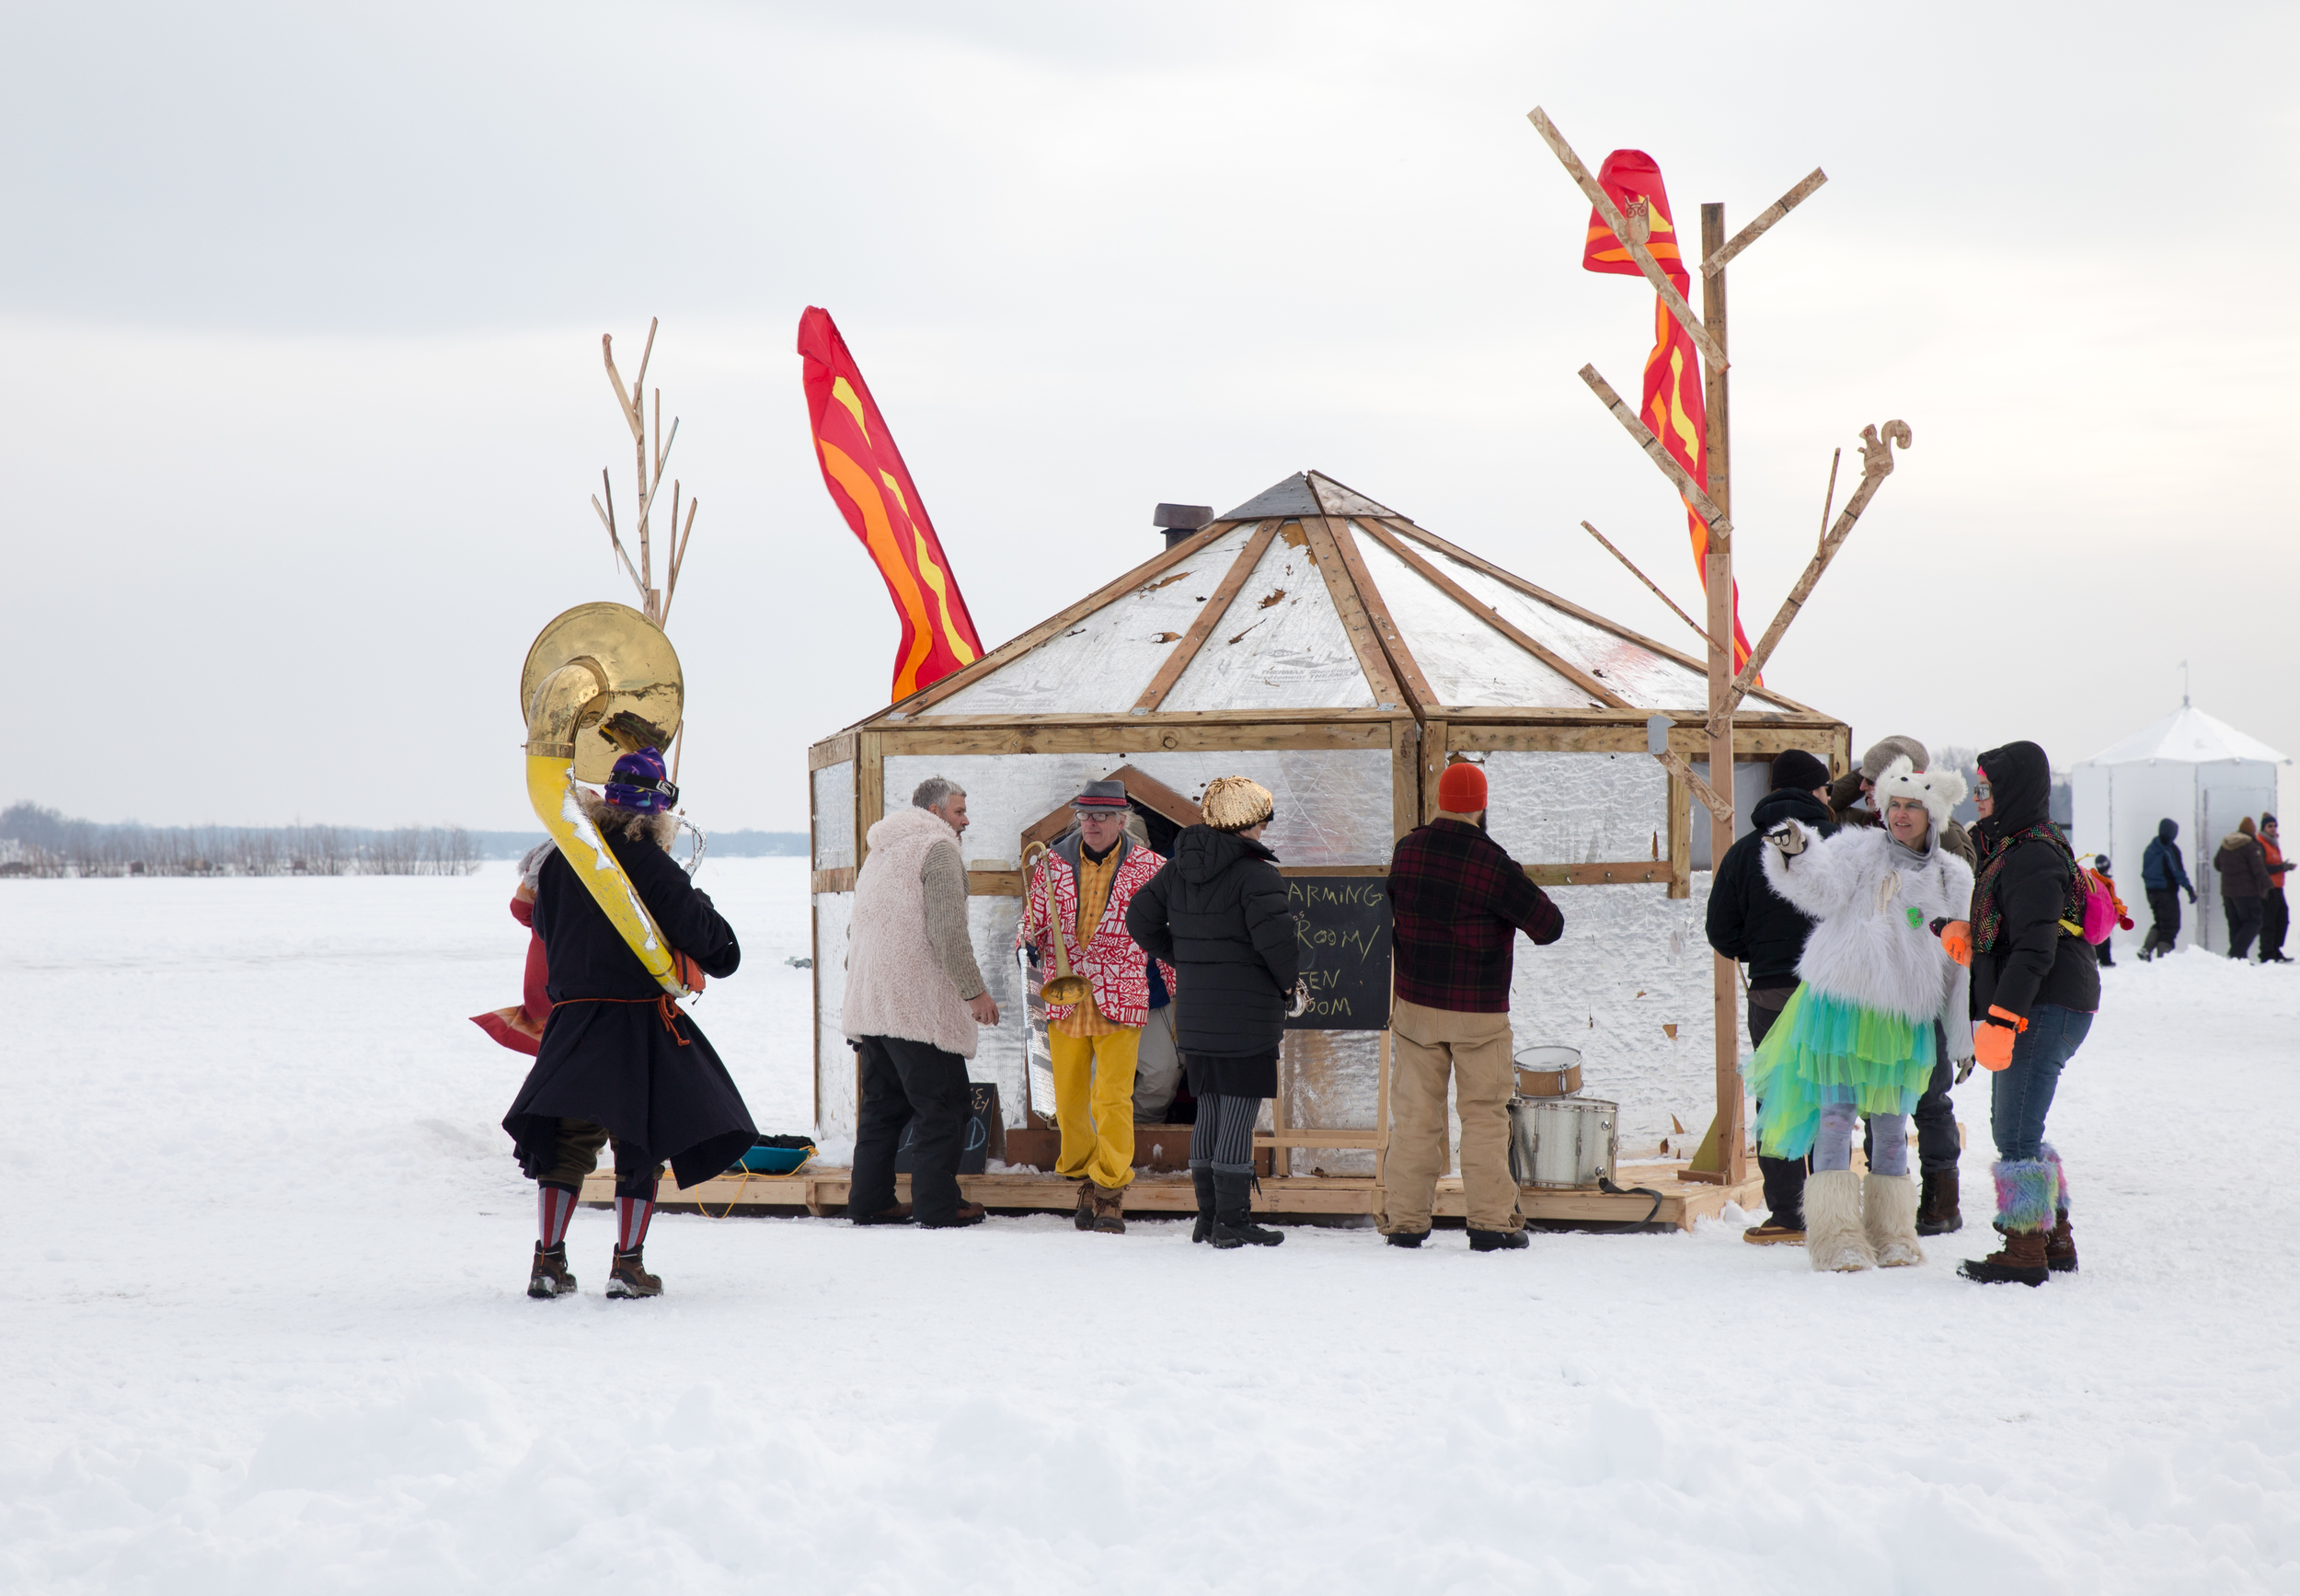 The Performance HexaYurt provides a home for untraditional performances